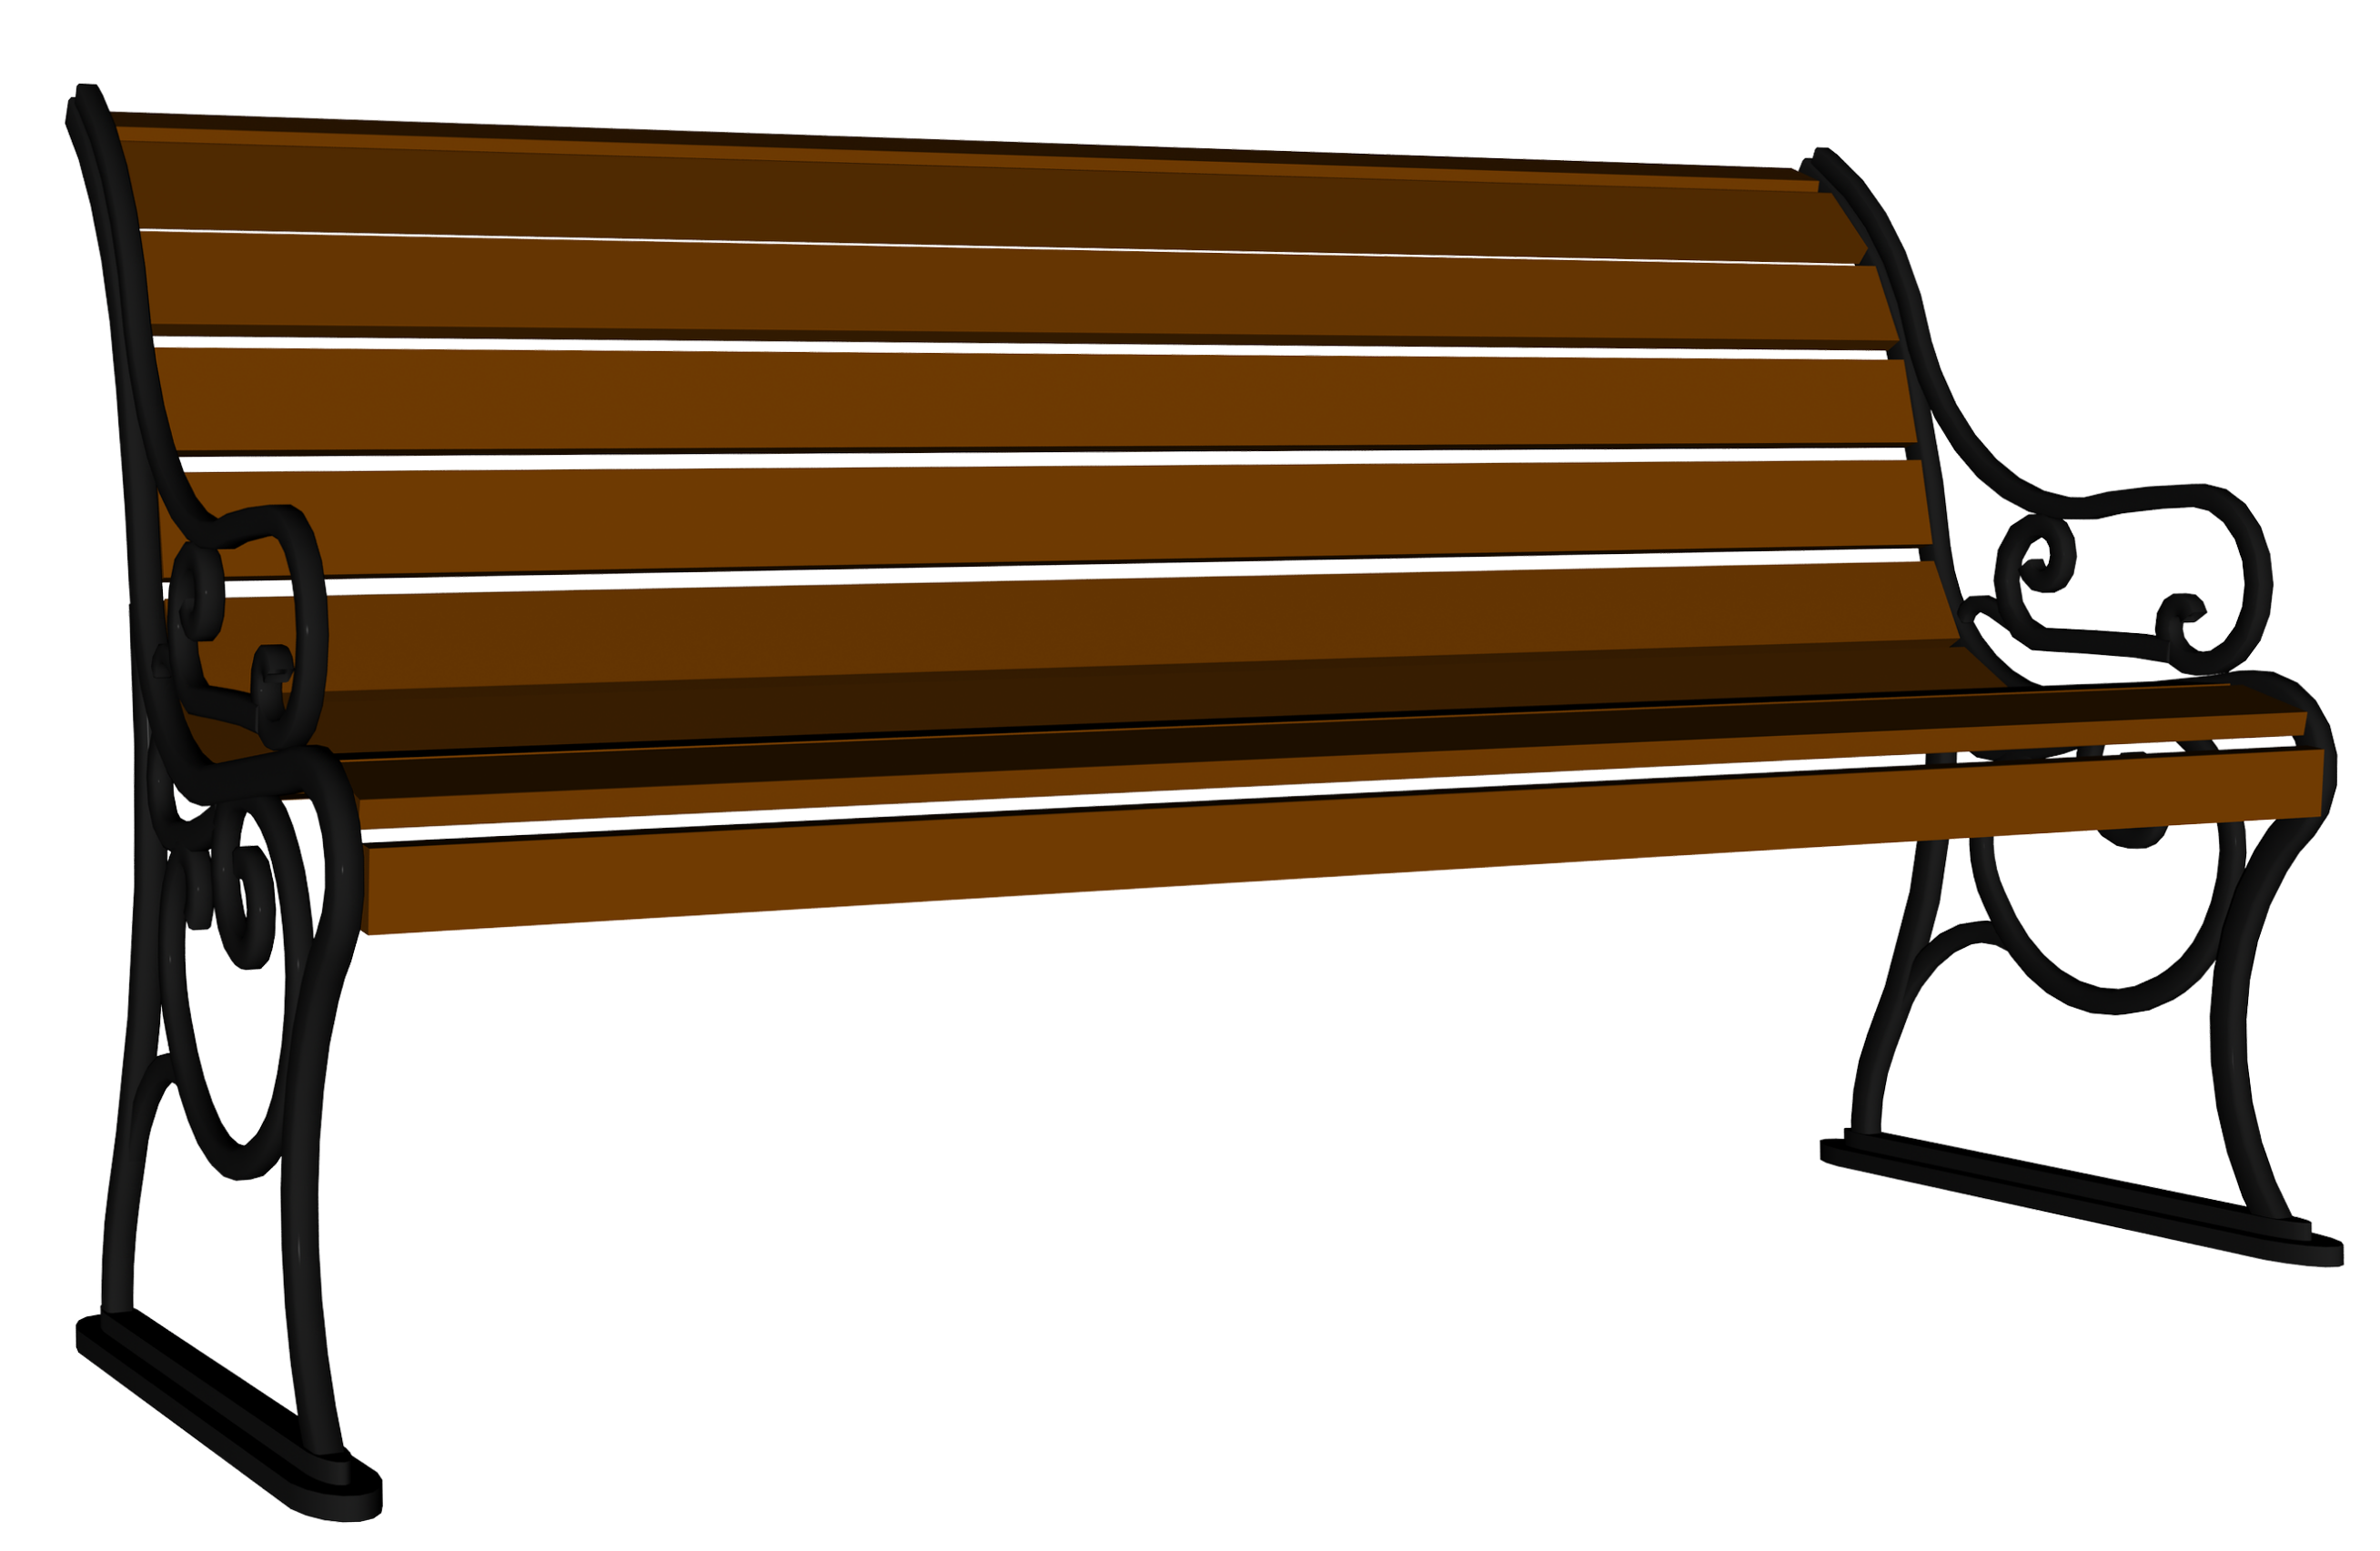 Clipart bench.